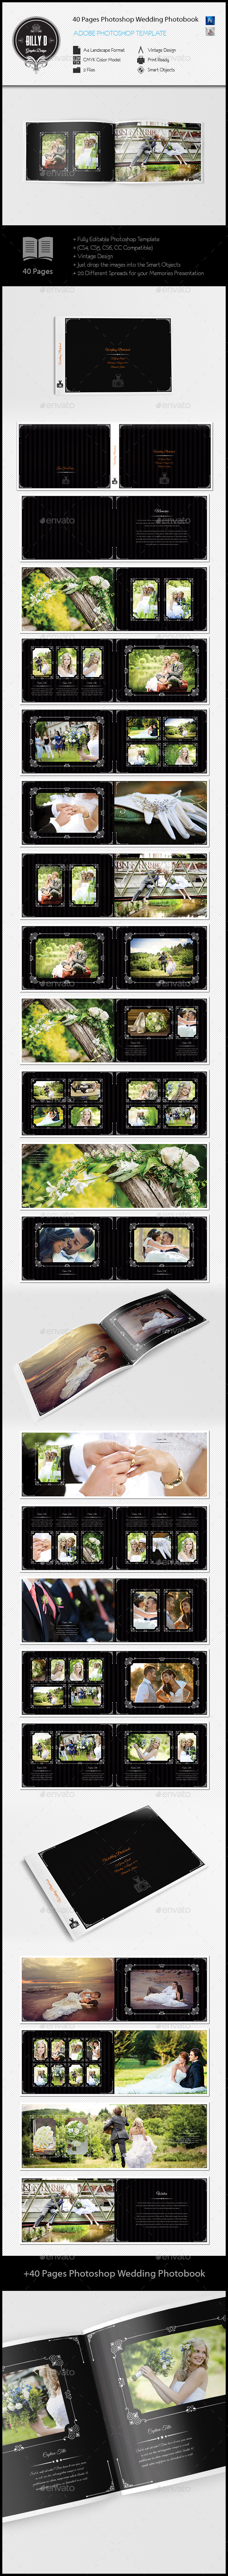 40_pages_photoshop_wedding_photobook_template_8661523